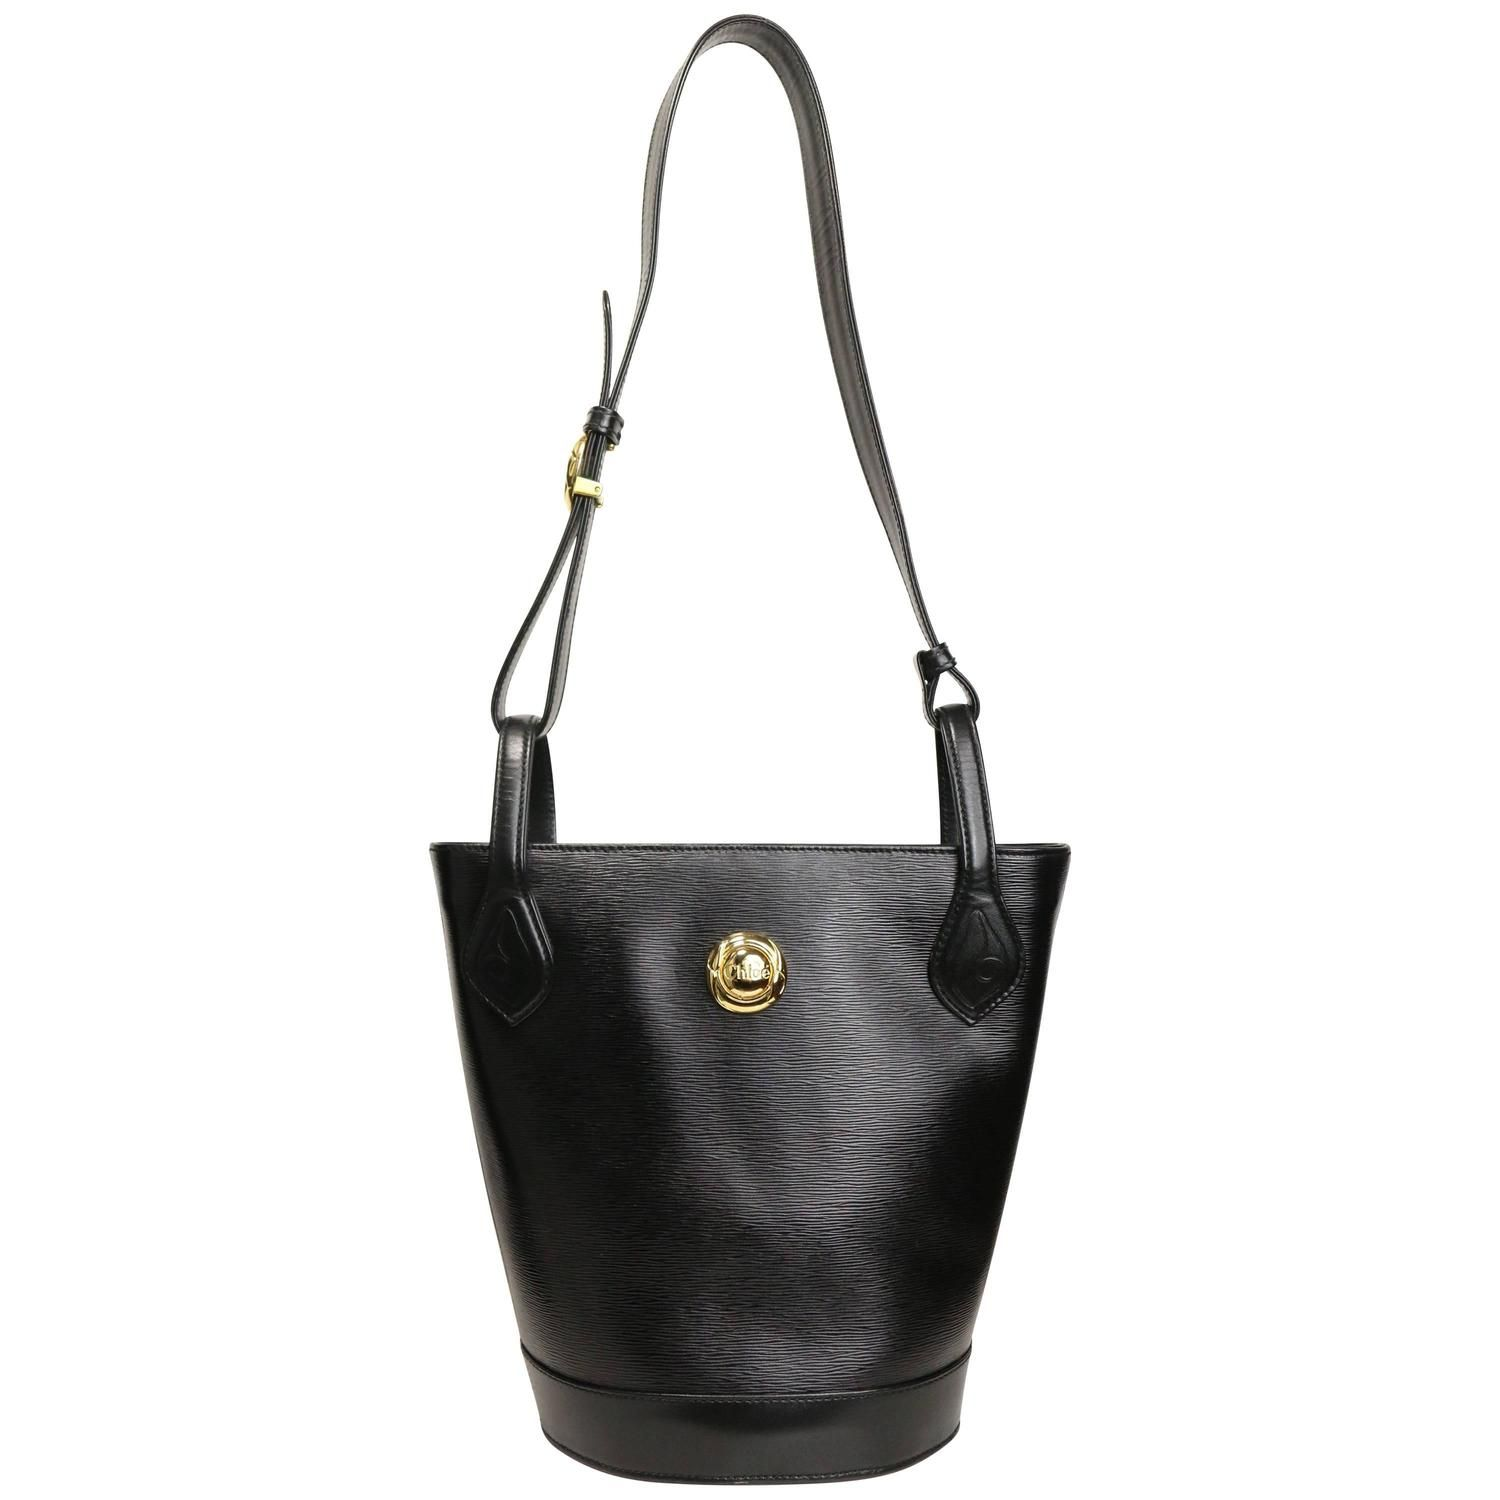 4b19e8506 Chloe Black Leather Bucket Bag with Strap